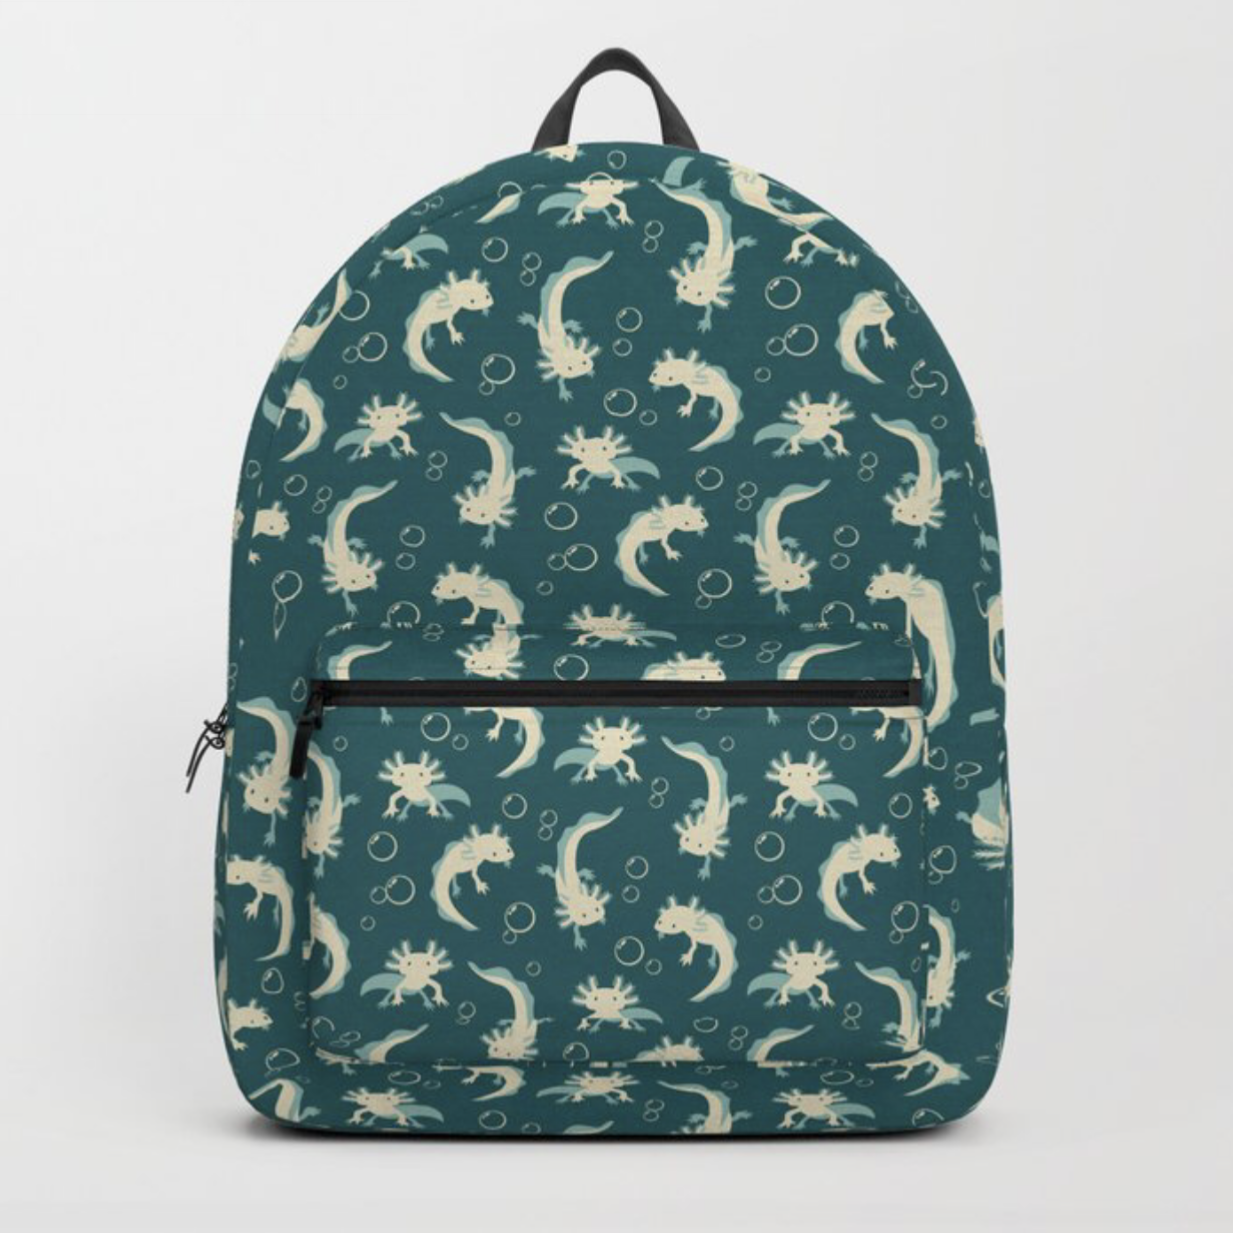 Relaxolotl teal backpack